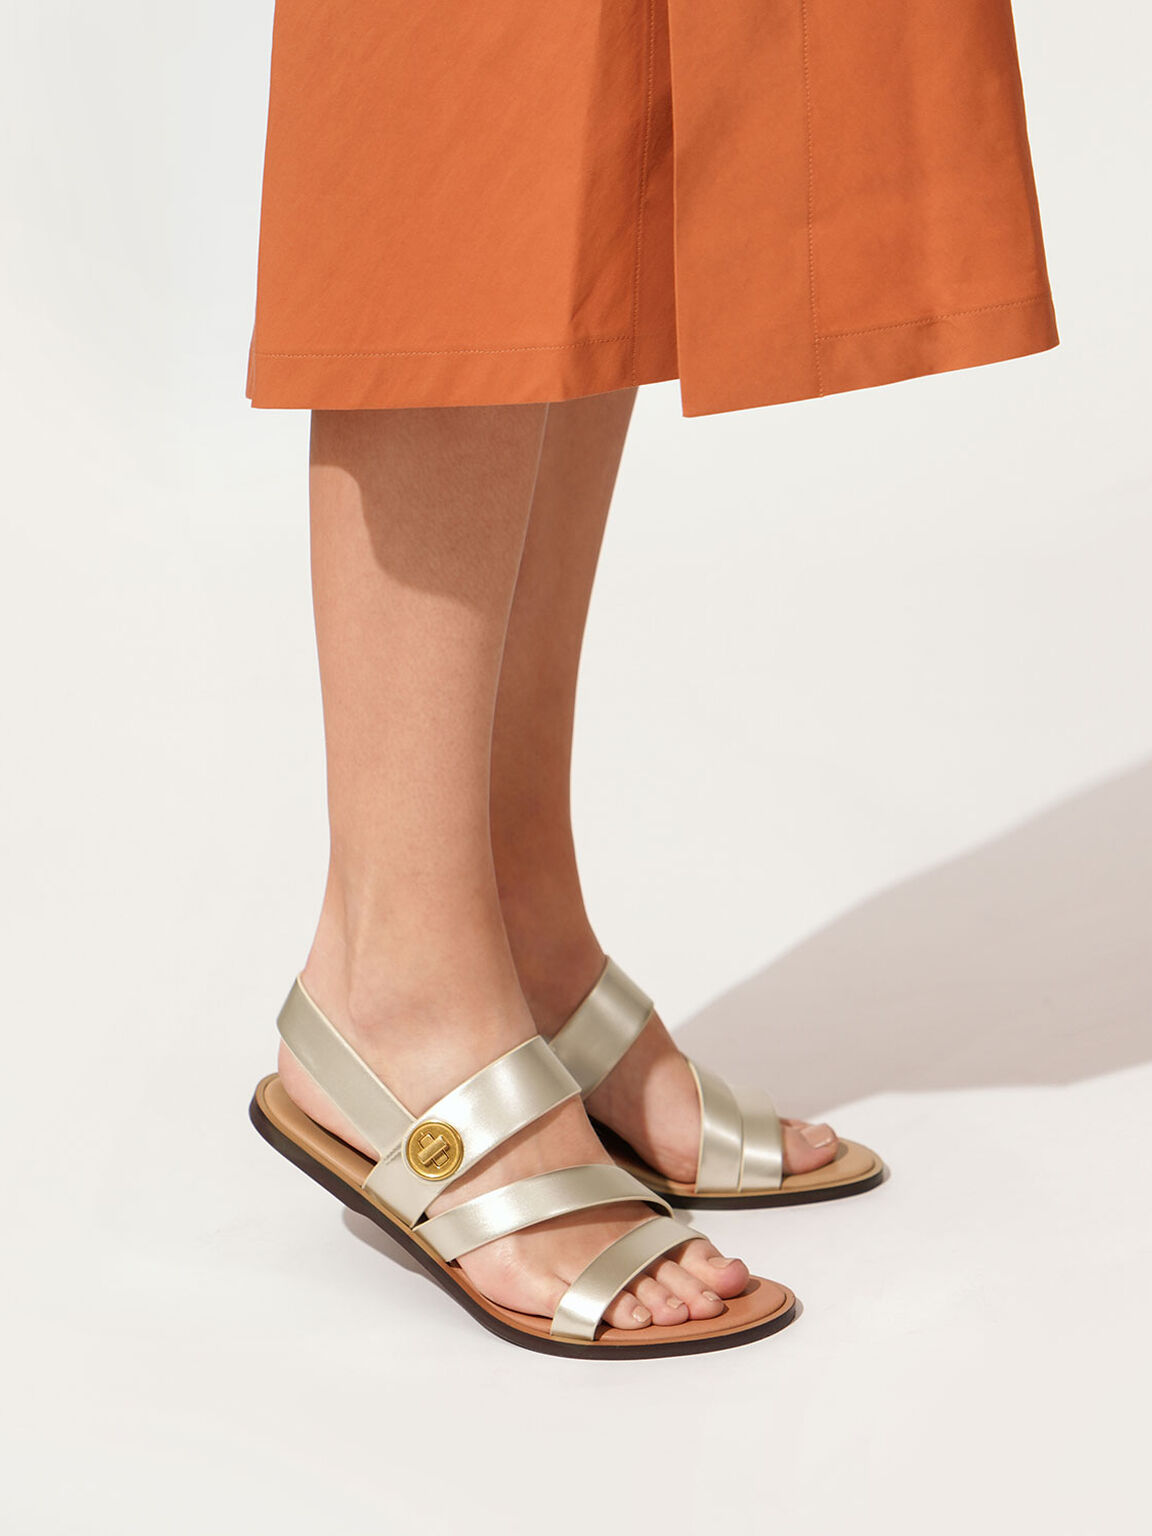 Asymmetrical Strappy Sandals, Gold, hi-res